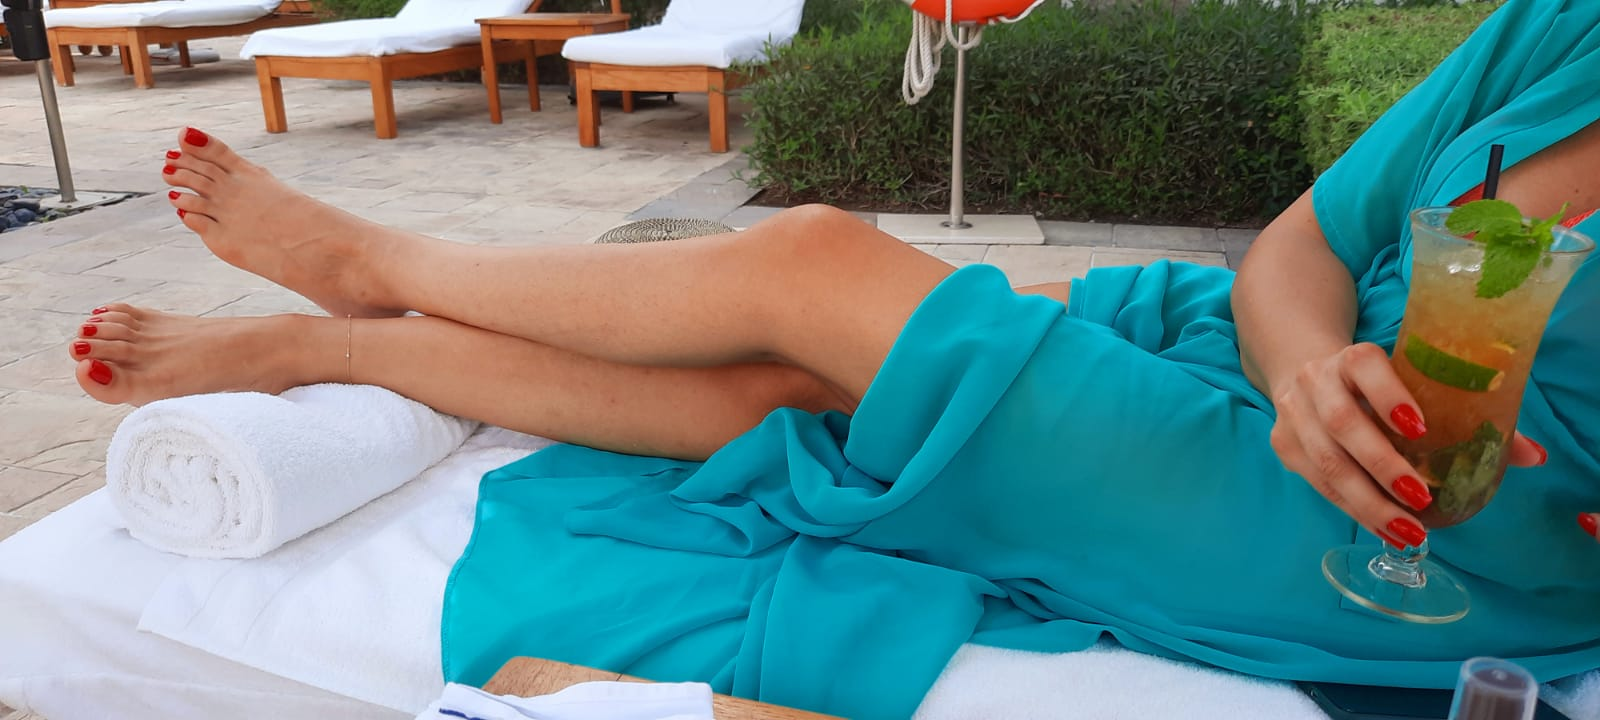 Goddess Anita is in a garden lying on a sun bed which is covered with white towels and she is wearing a turquoise beach dress, her legs are visible and her feet have red pedicured toe nails and in her right hand she is holding a tall cocktail with a straw and mint garnish.